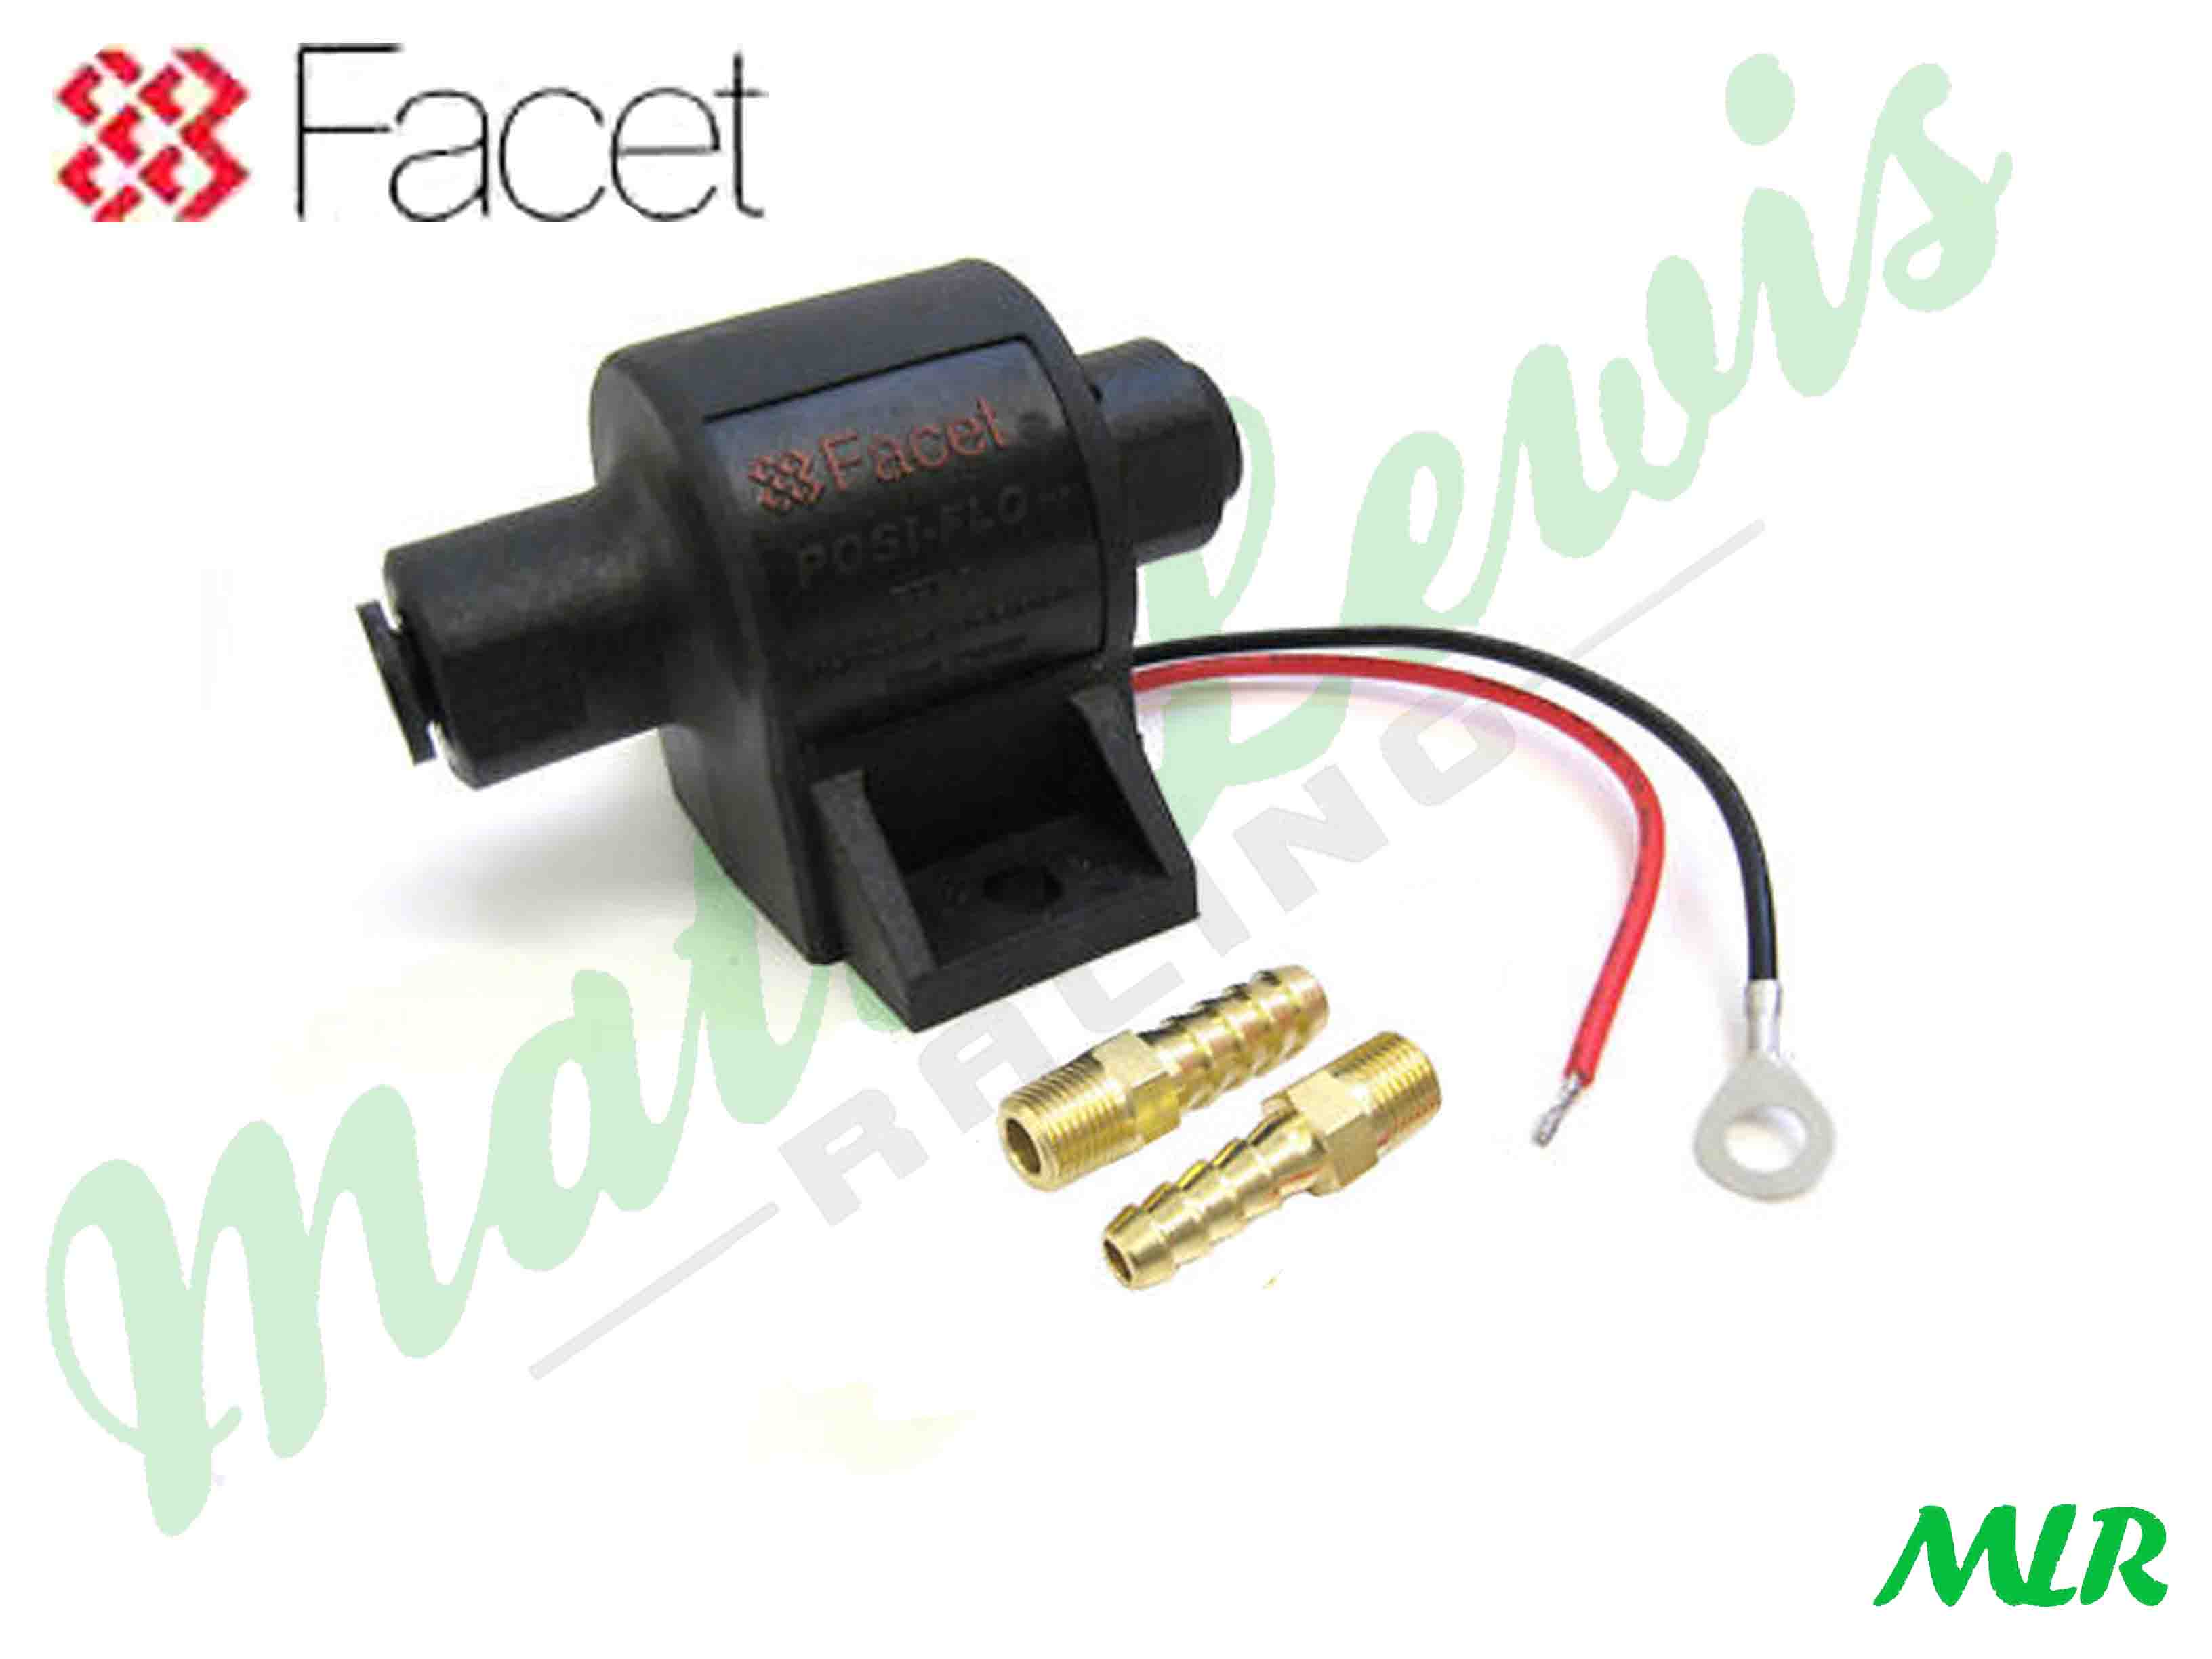 6mm FACET Fuel Pump Union race//rally//autograss//kitcar//trackday